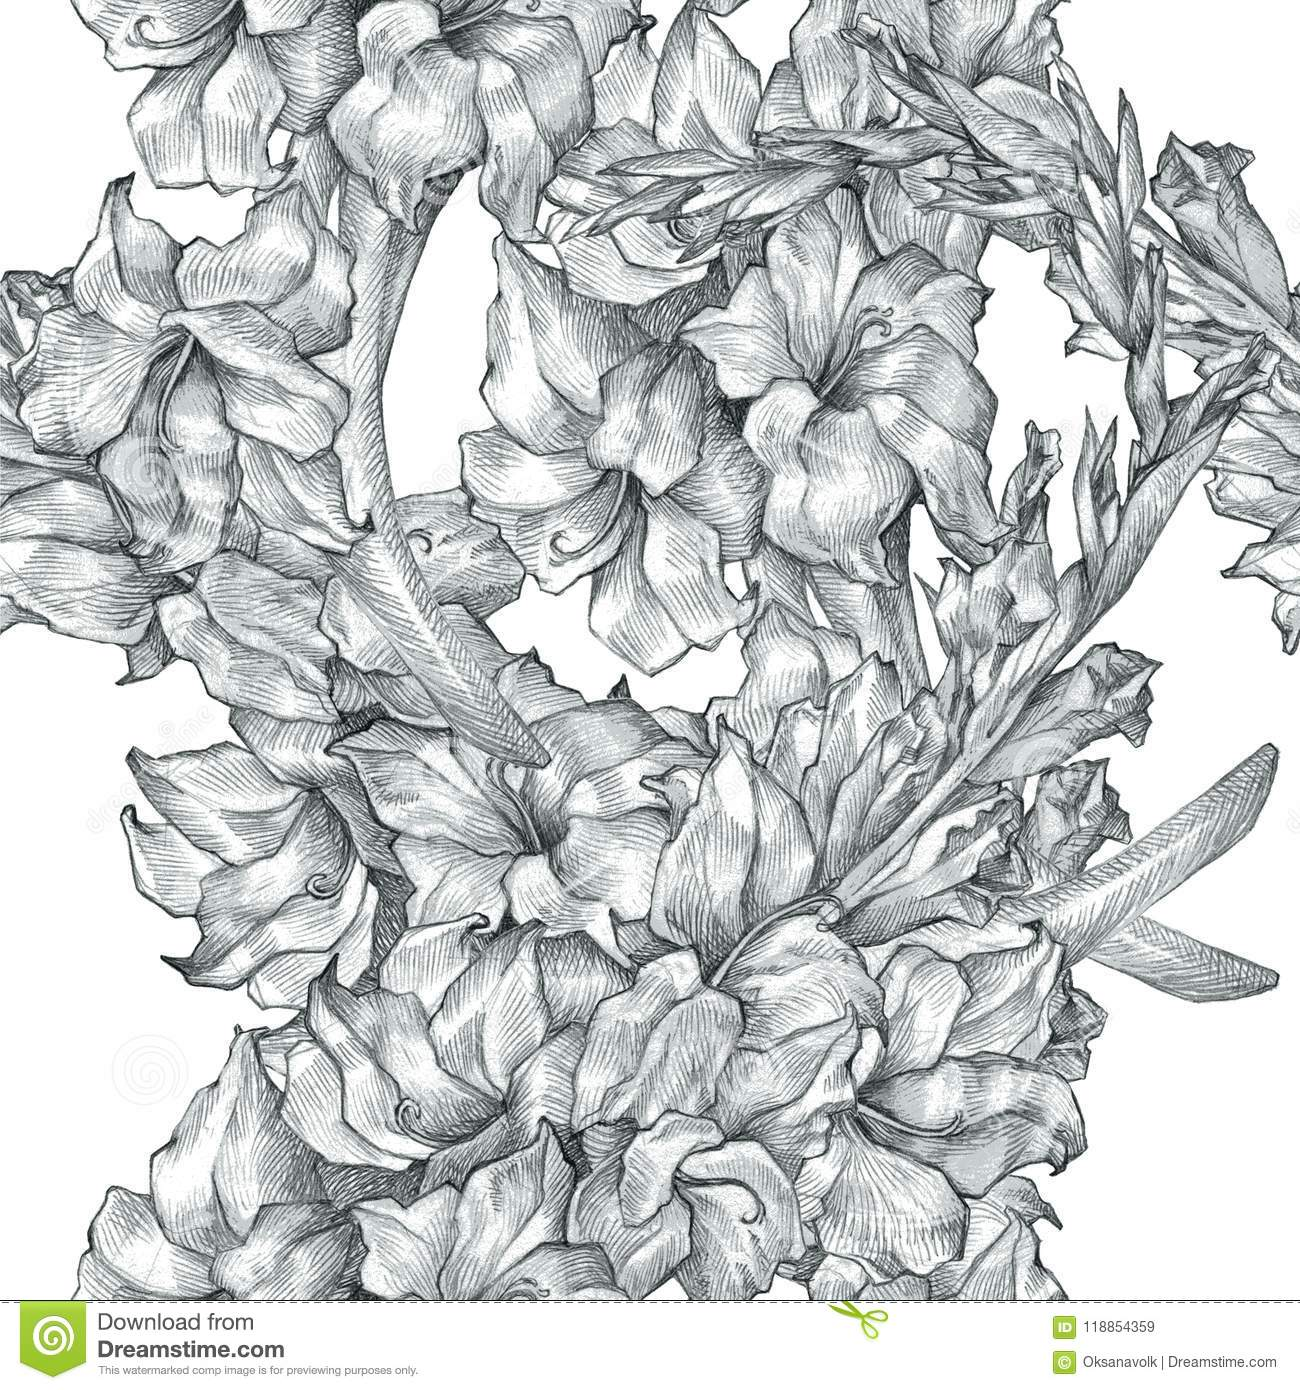 Botanical floral flower pencil drawing sketch seamless ornate pattern black and white texture background for invitations download preview